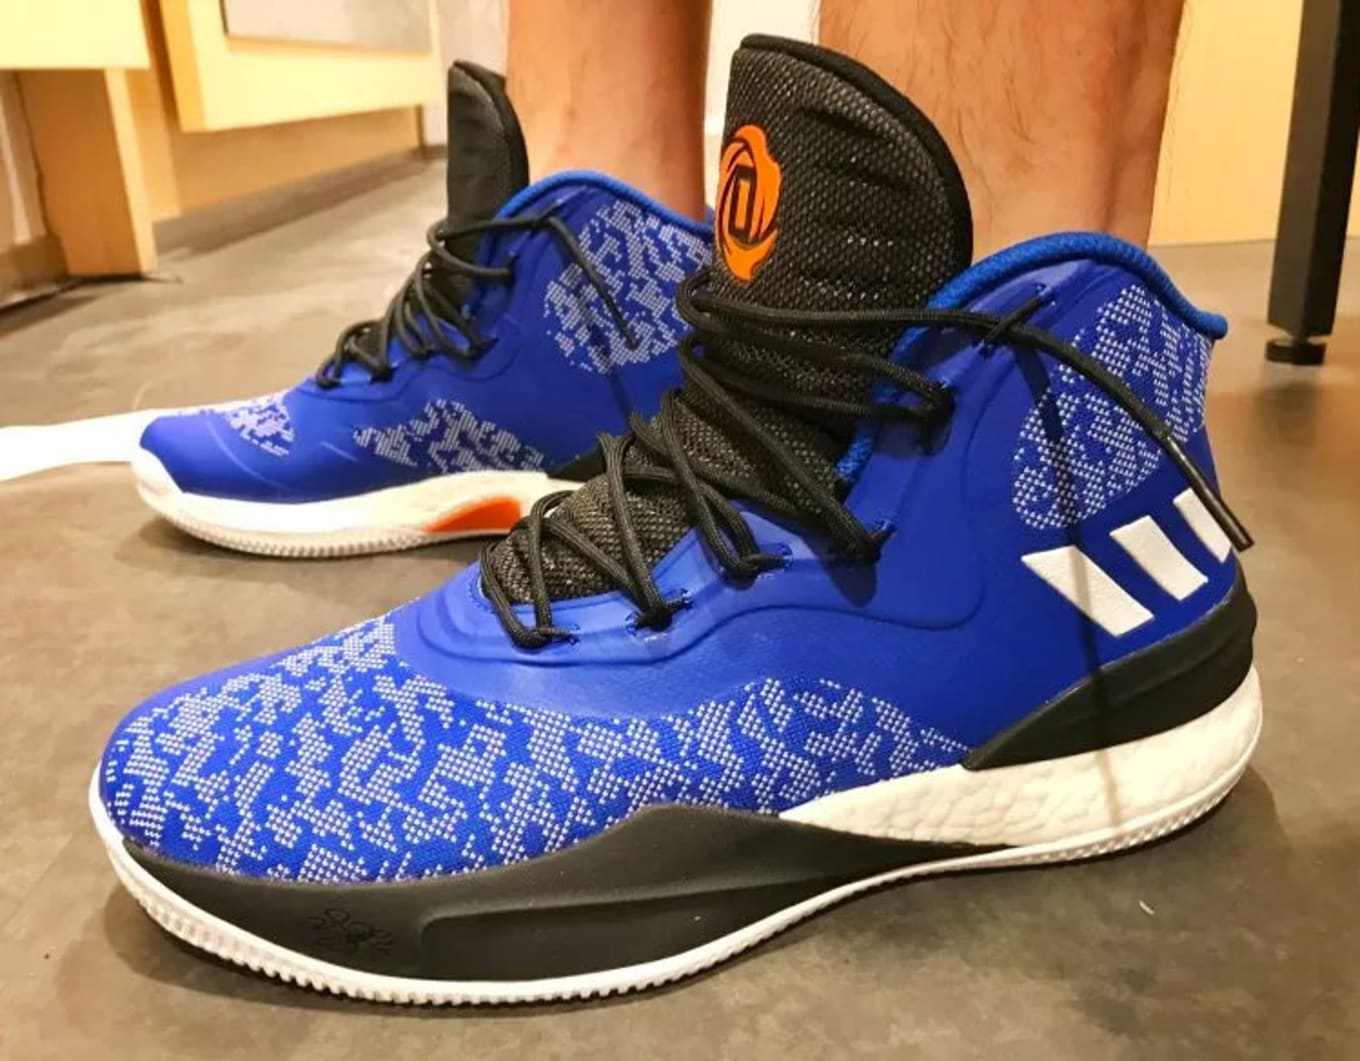 best sneakers 71c41 fd083 Derrick Roses New Sneakers Already Released in Knicks Colors. This Adidas  D Rose 8 is a little too late.